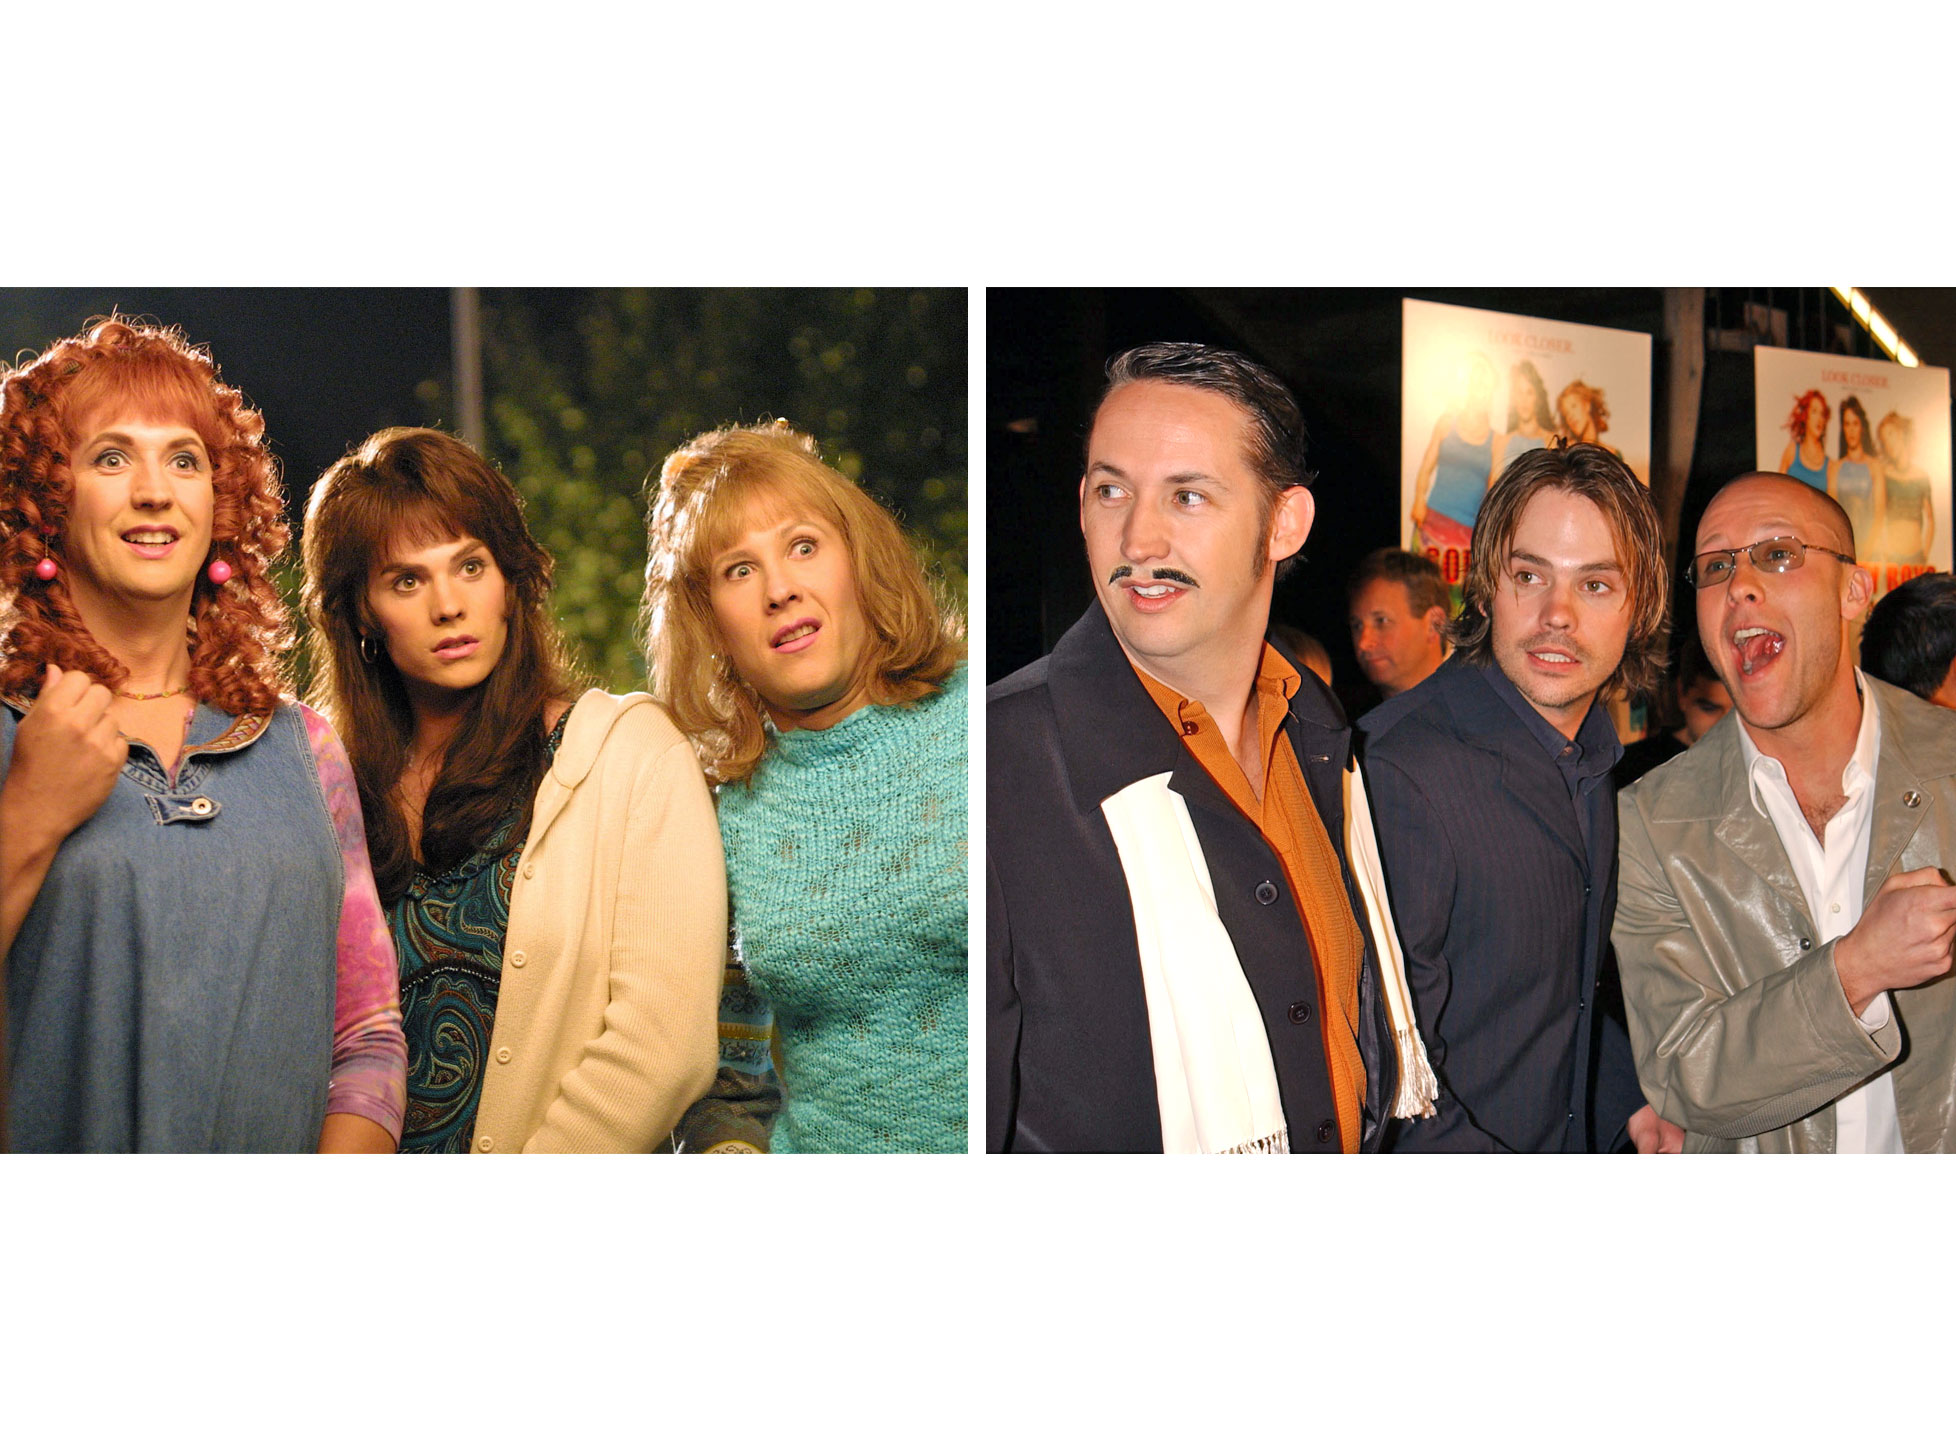 Harland Williams as Roberta, Barry Watson as Daisy and Michael Rosenbaum as Adina in Sorority Boys